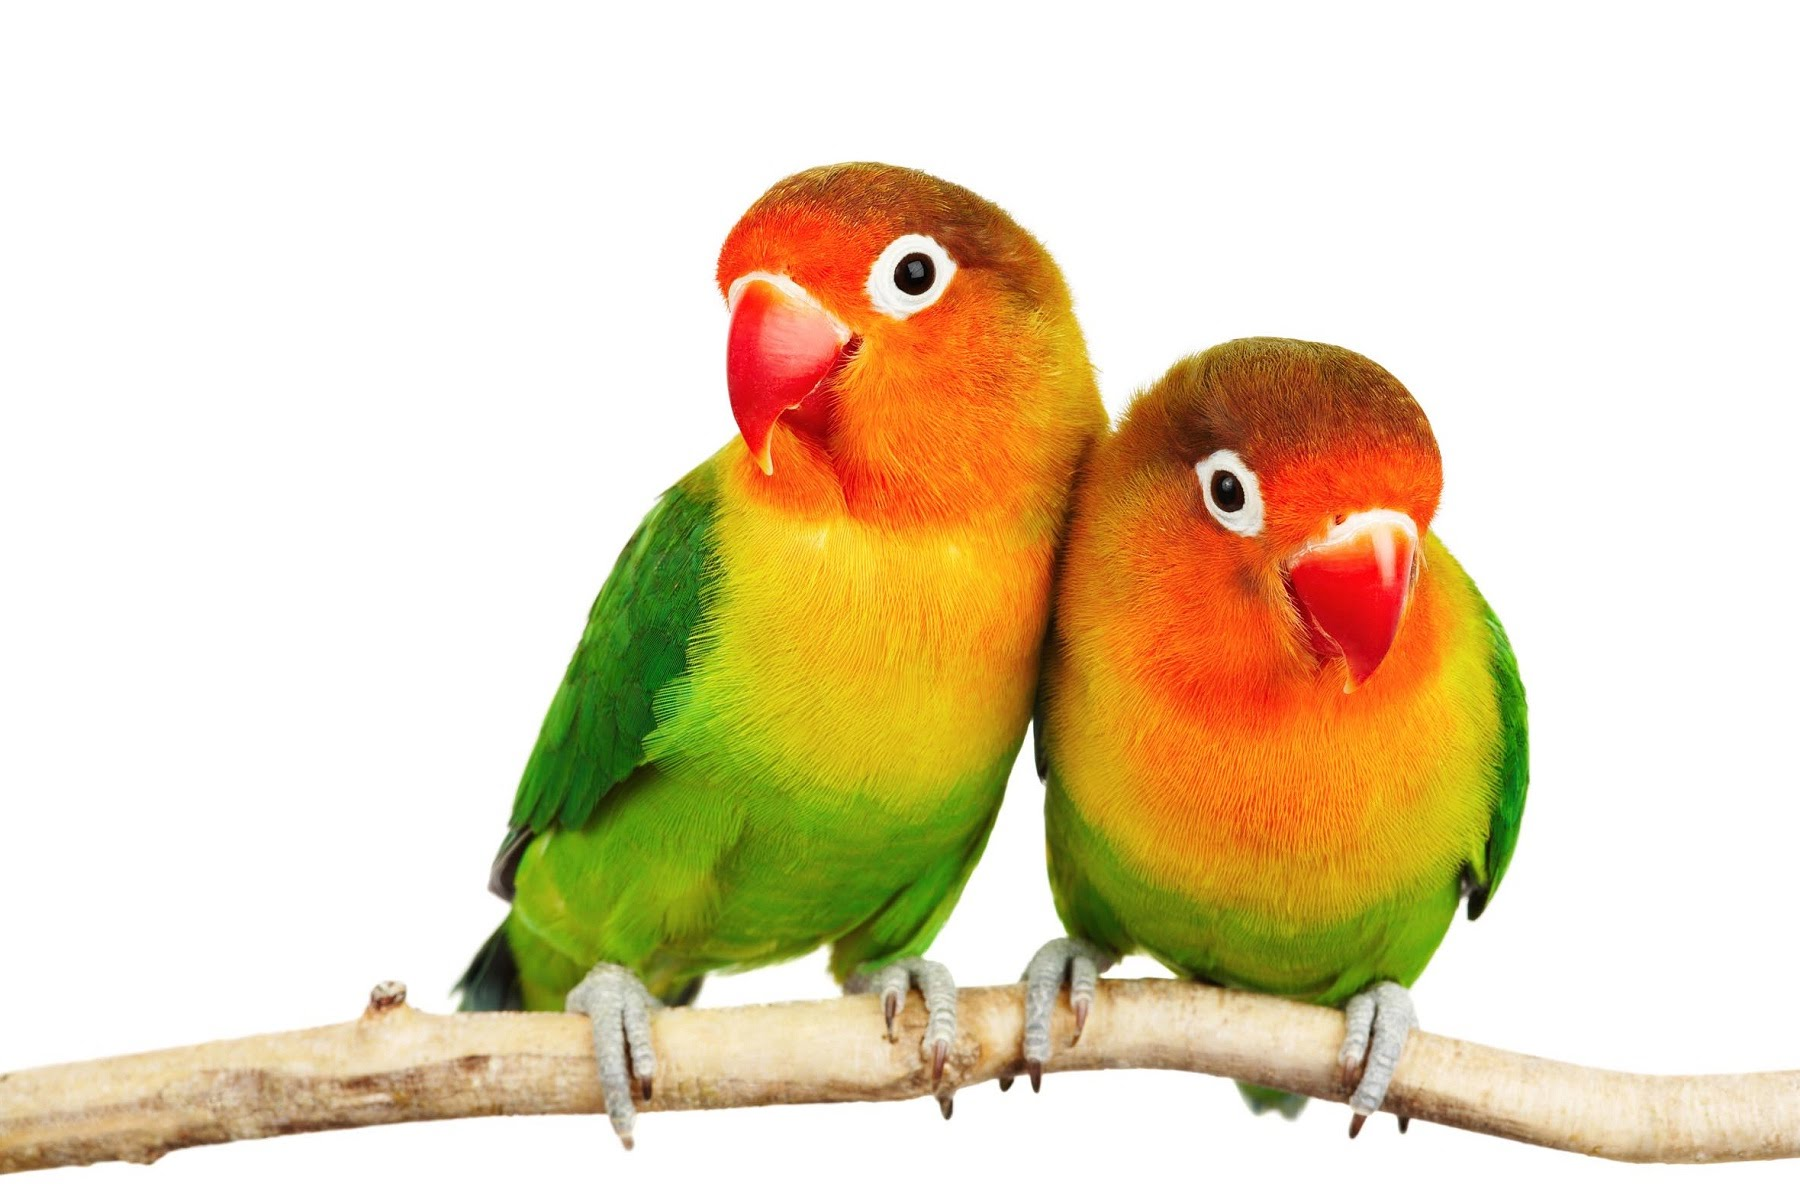 Lovebirds Png Hd Transparent Lovebirds Hd Png Images Pluspng